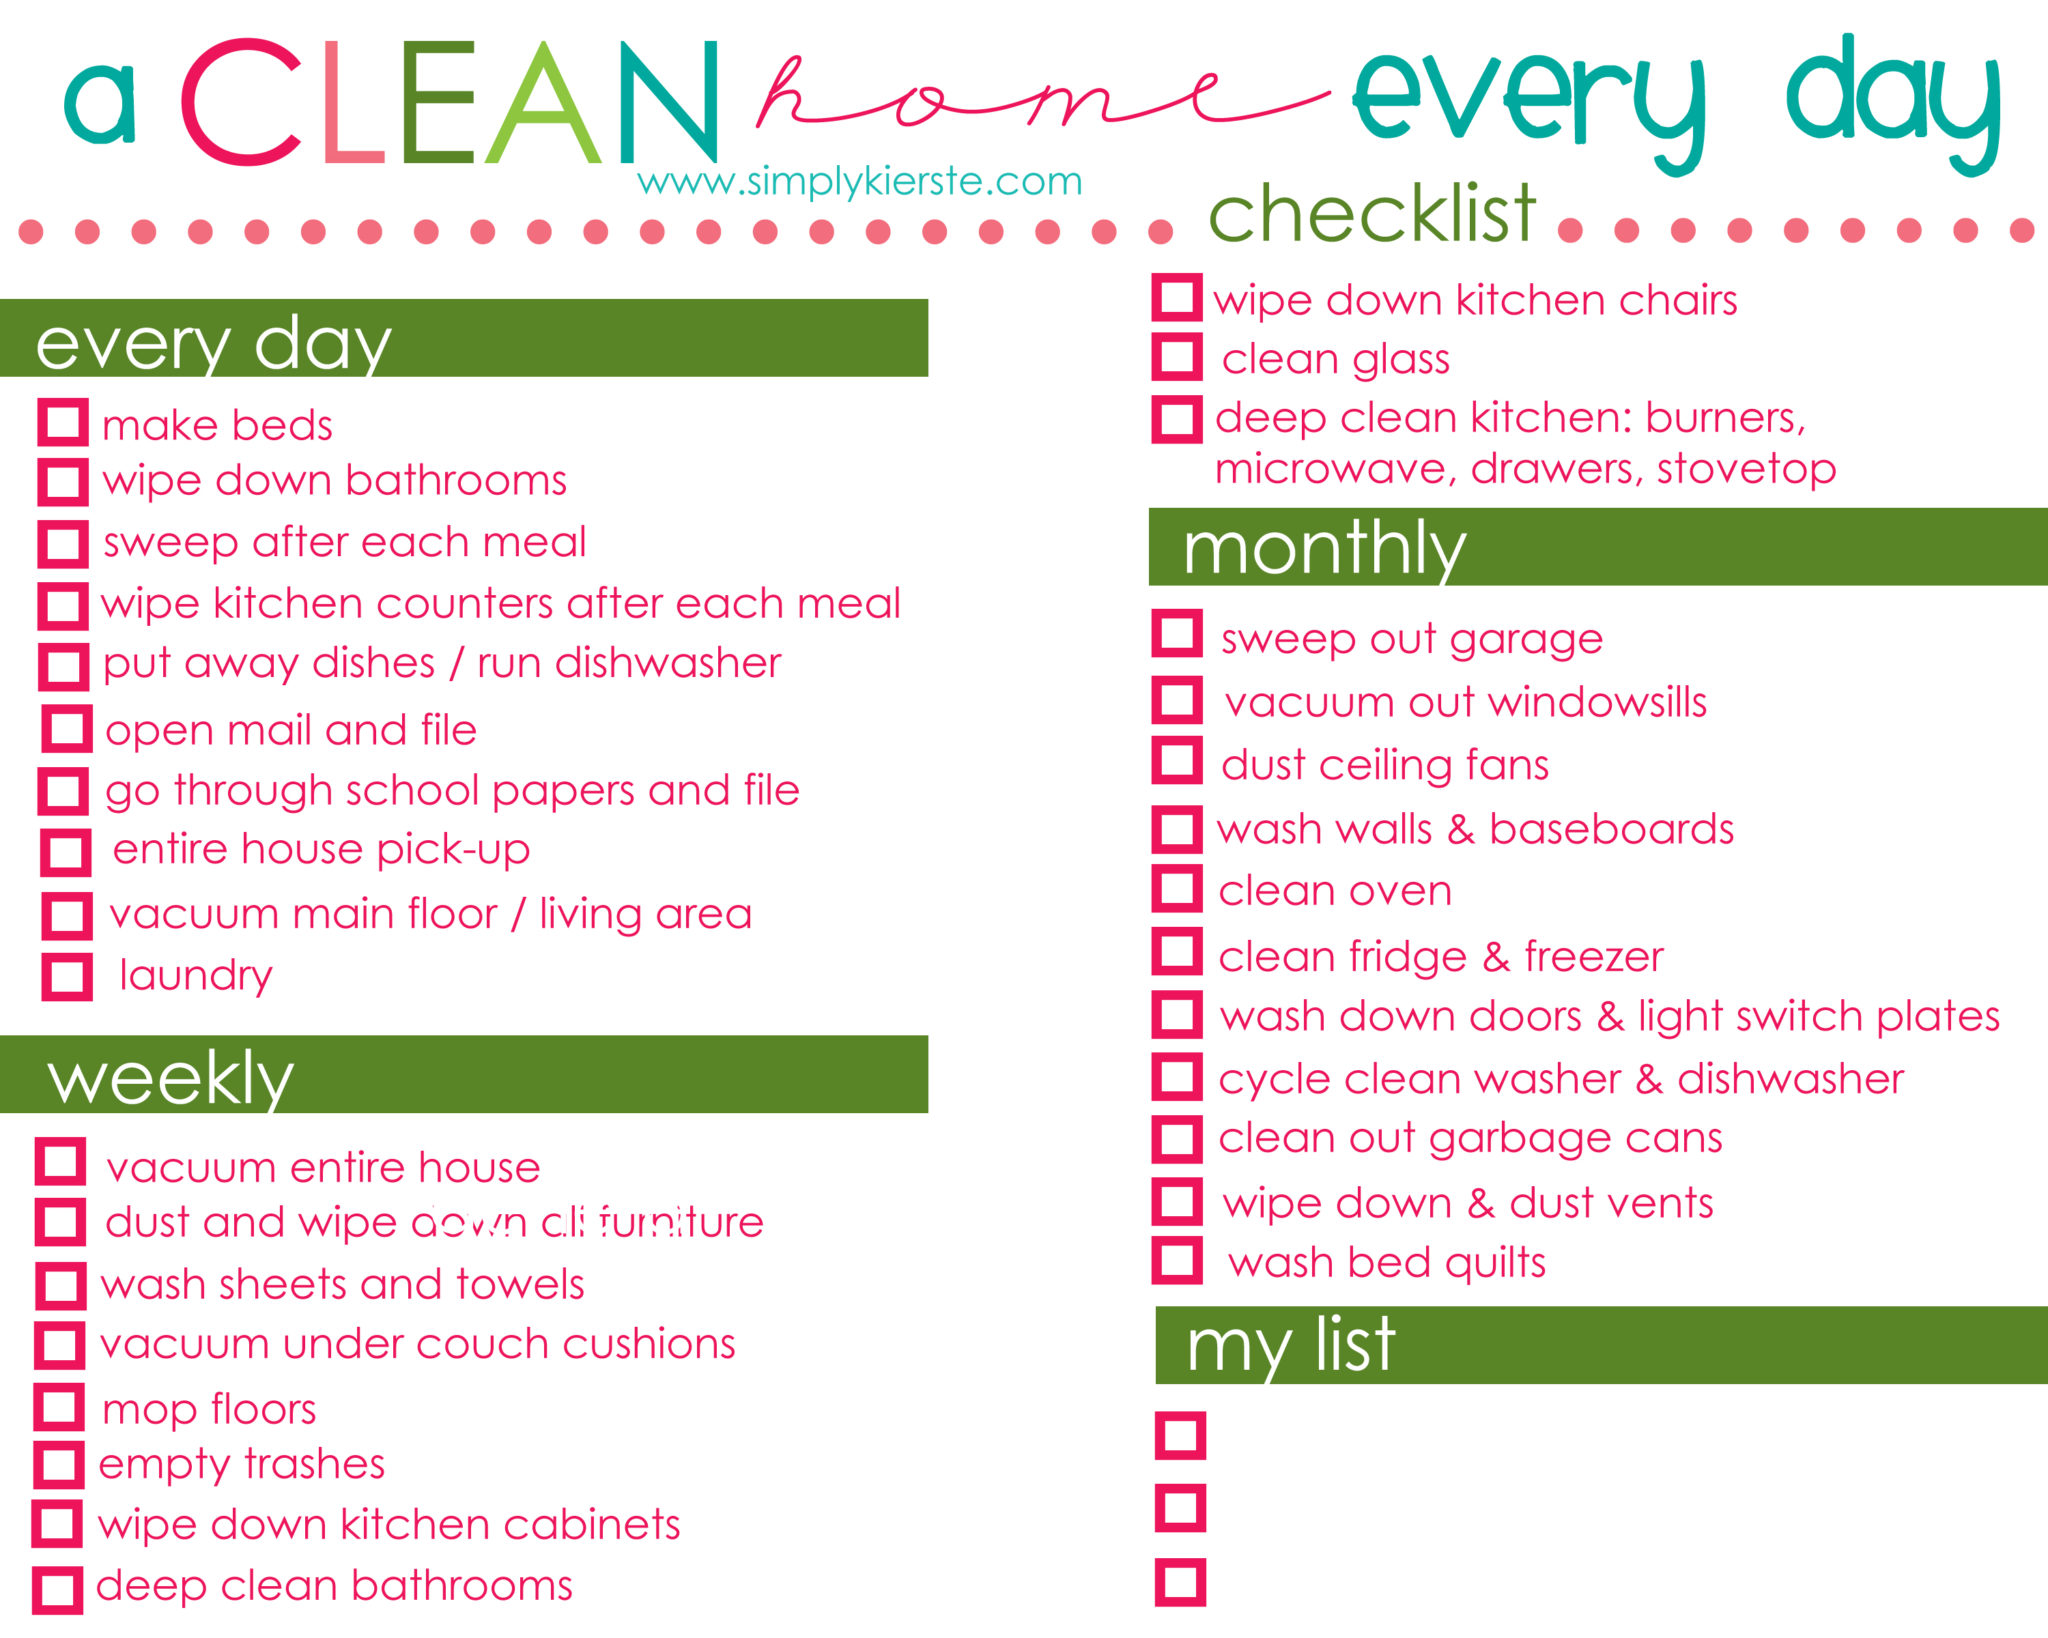 how to have a clean home every day | simplykierste.com #cleaningtips #cleaningschedule #cleaningideas #cleaningmethod